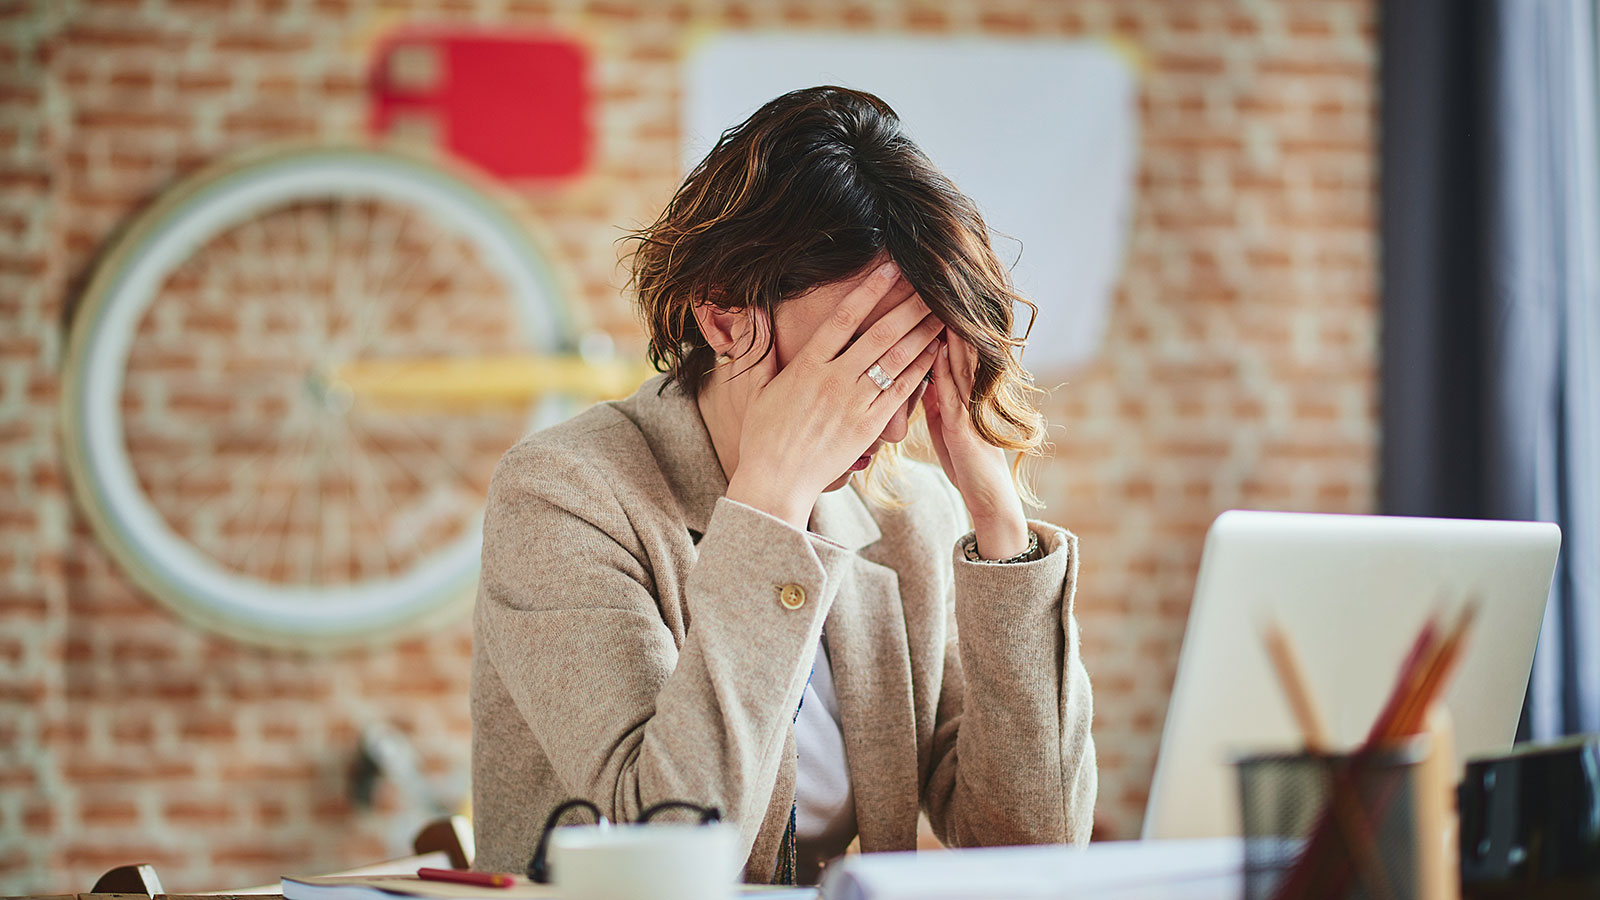 The myth behind job burnout: What it actually is and how to avoid it